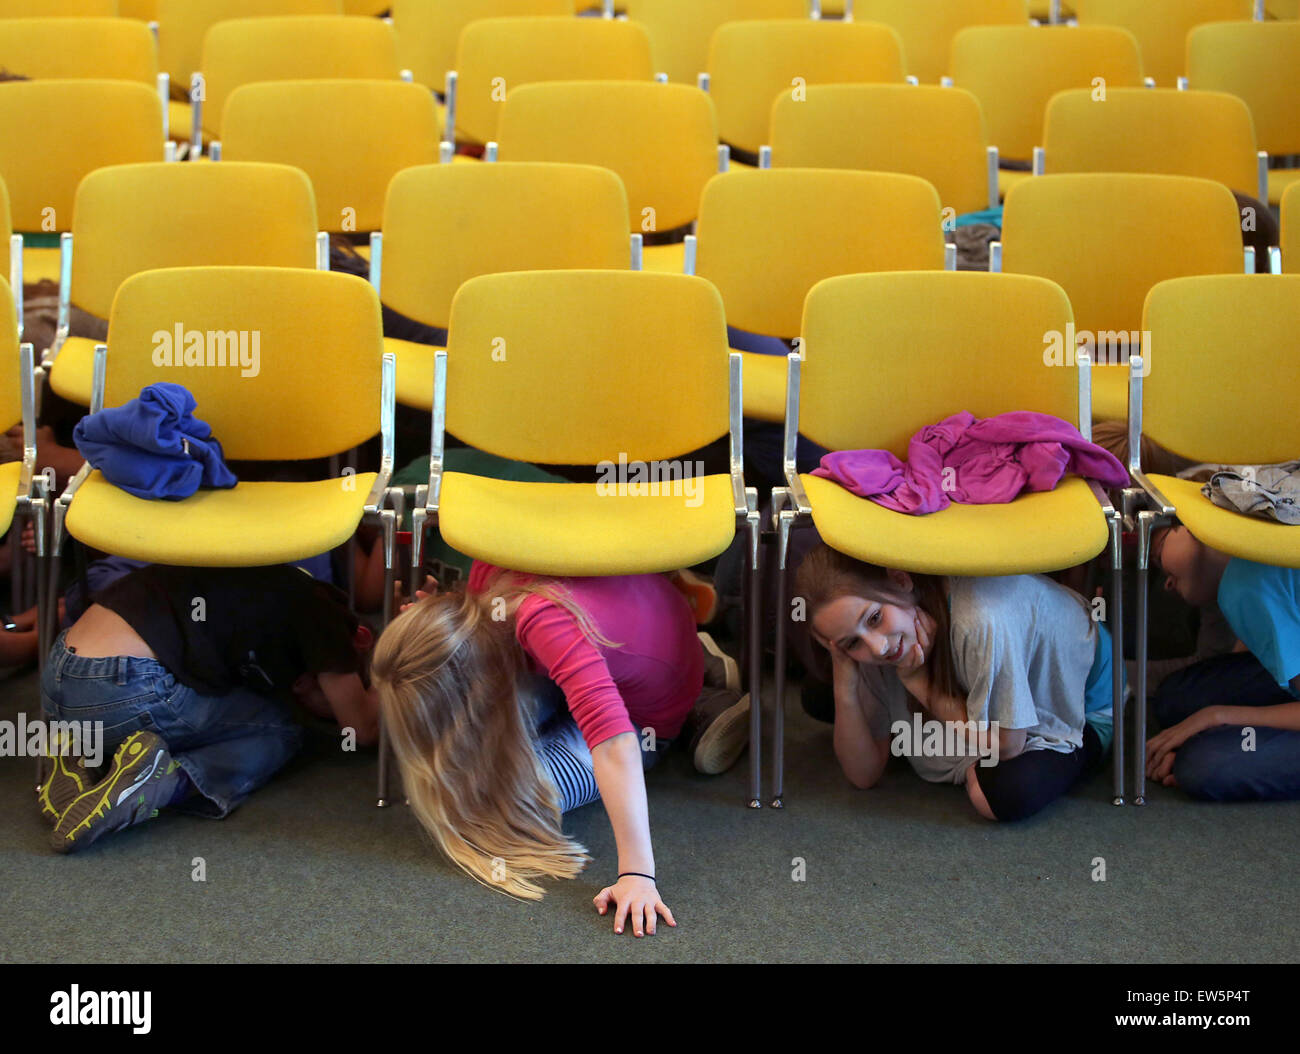 Aachen, Germany. 18th June, 2015. Students seek protection under auditorium seats during an earthquake drill in - Stock Image